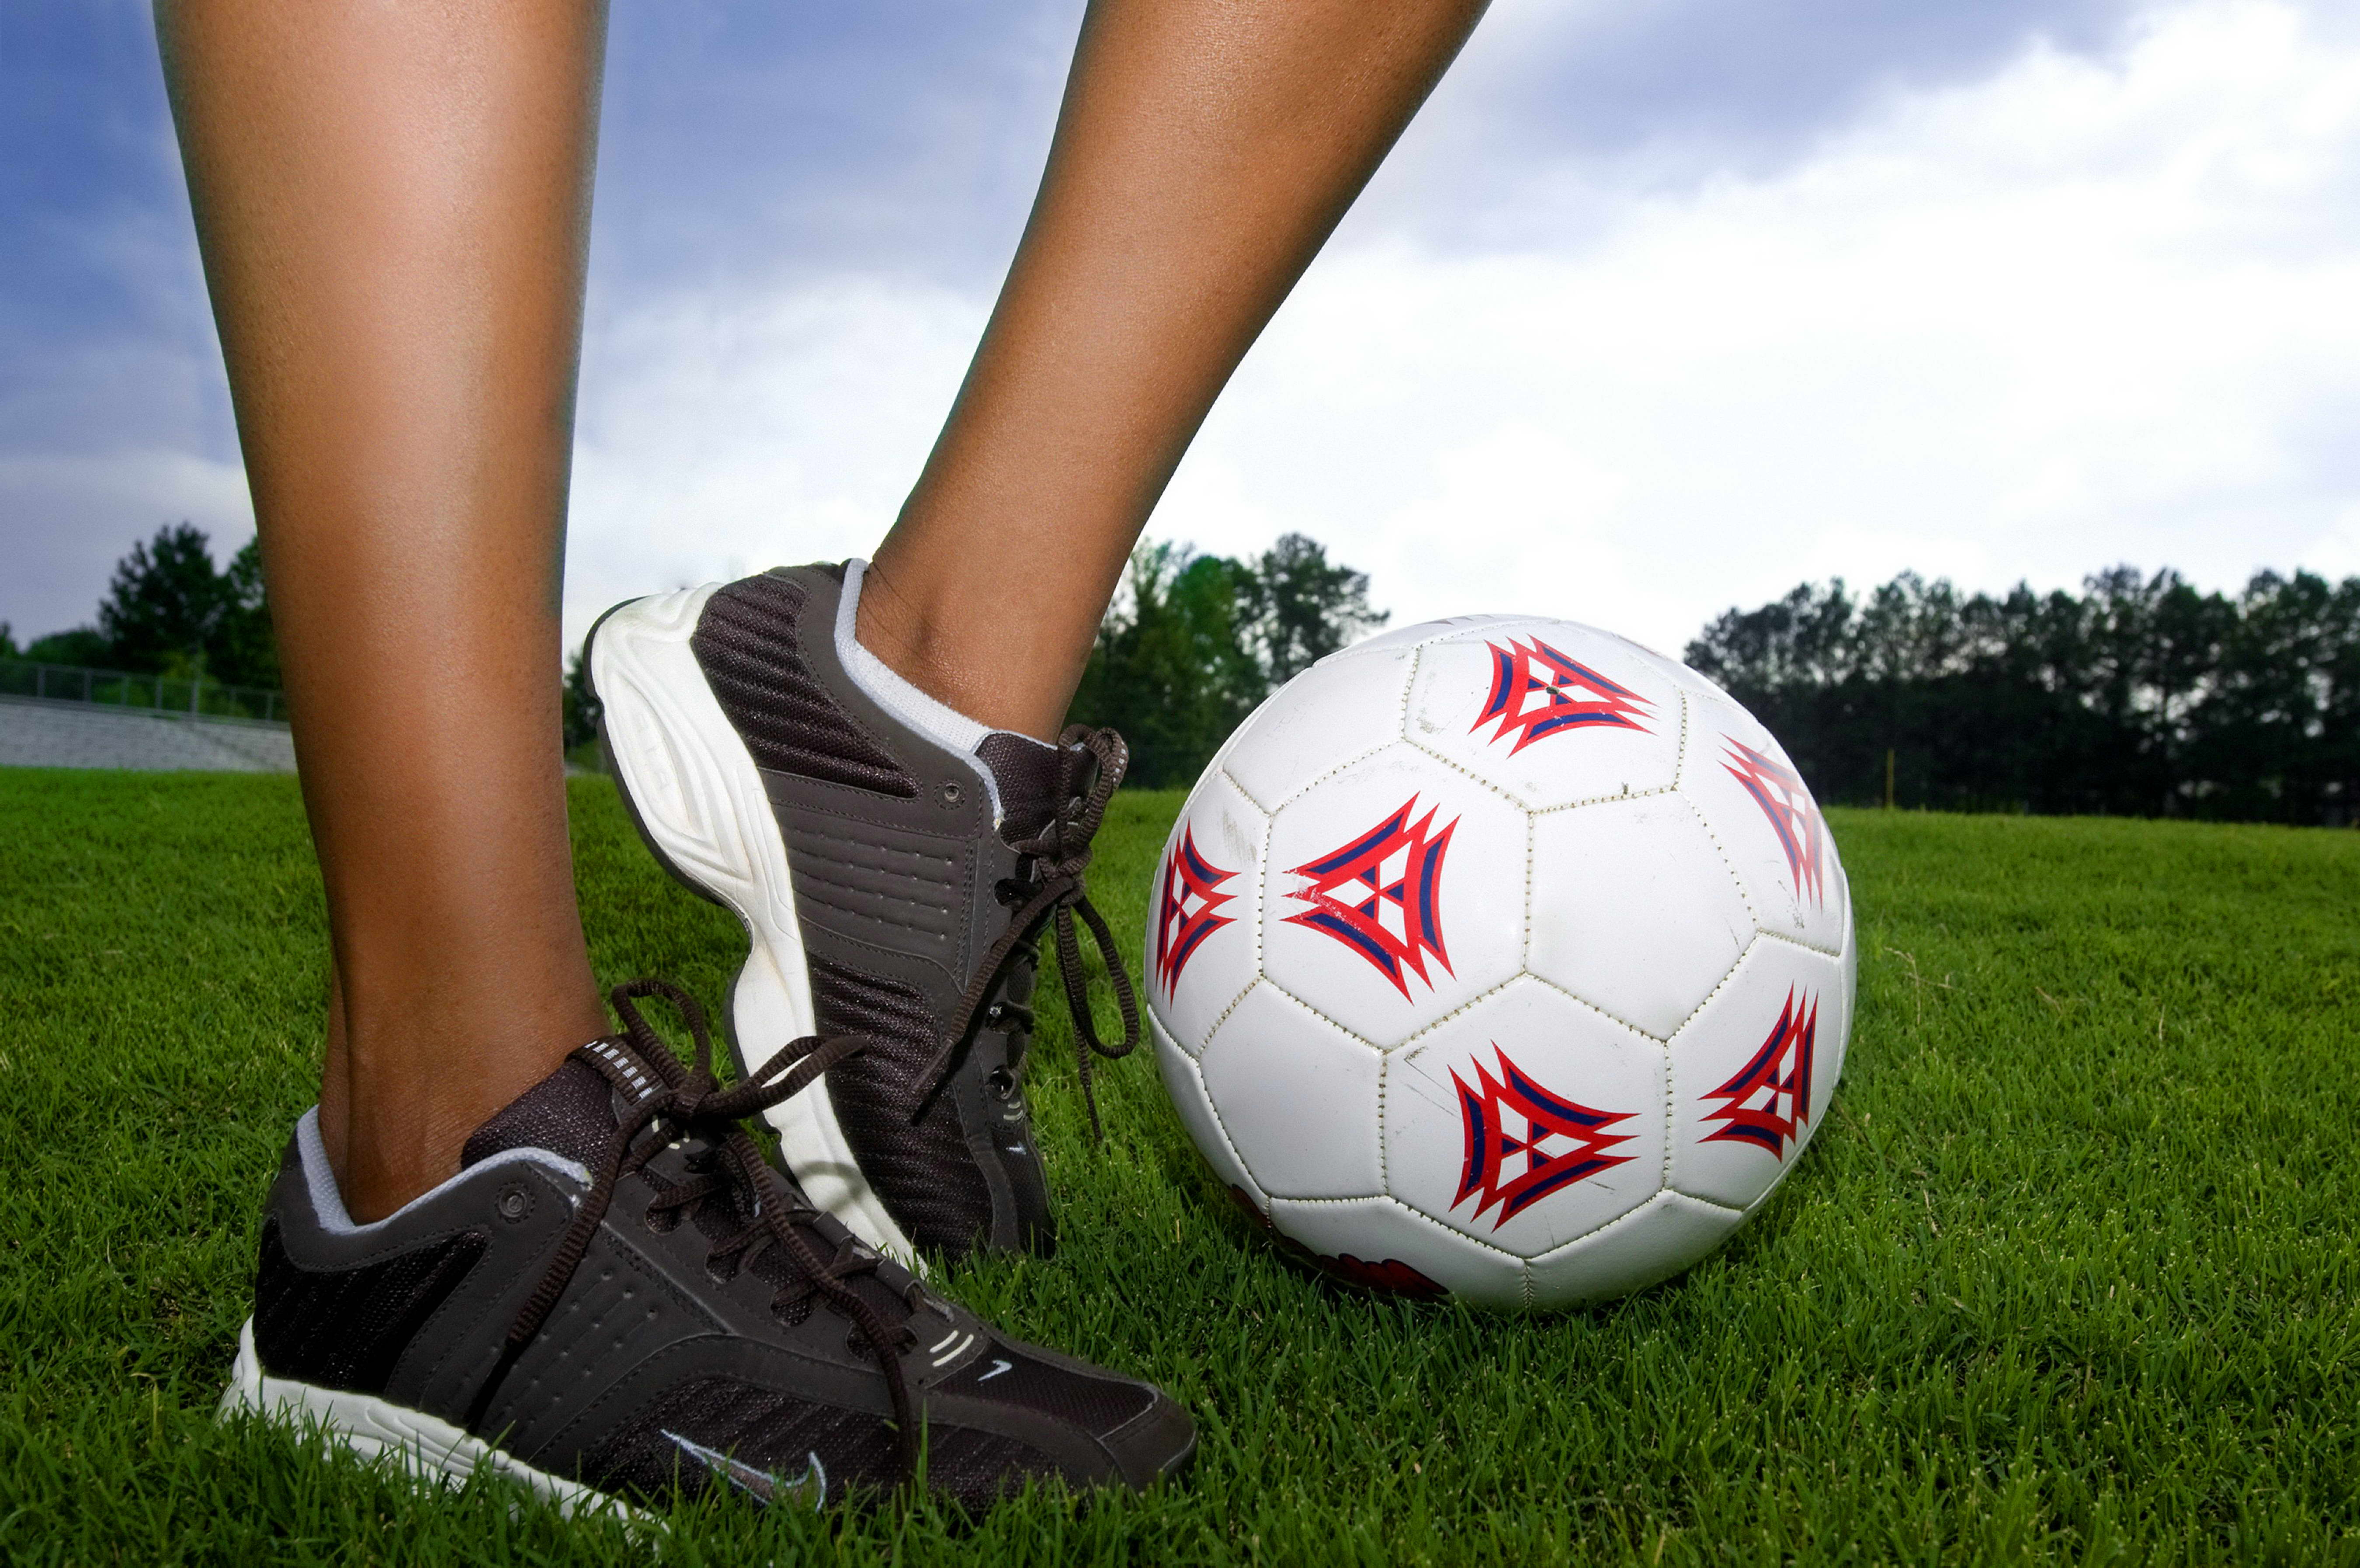 young-woman-in-game-of-soccer.jpg